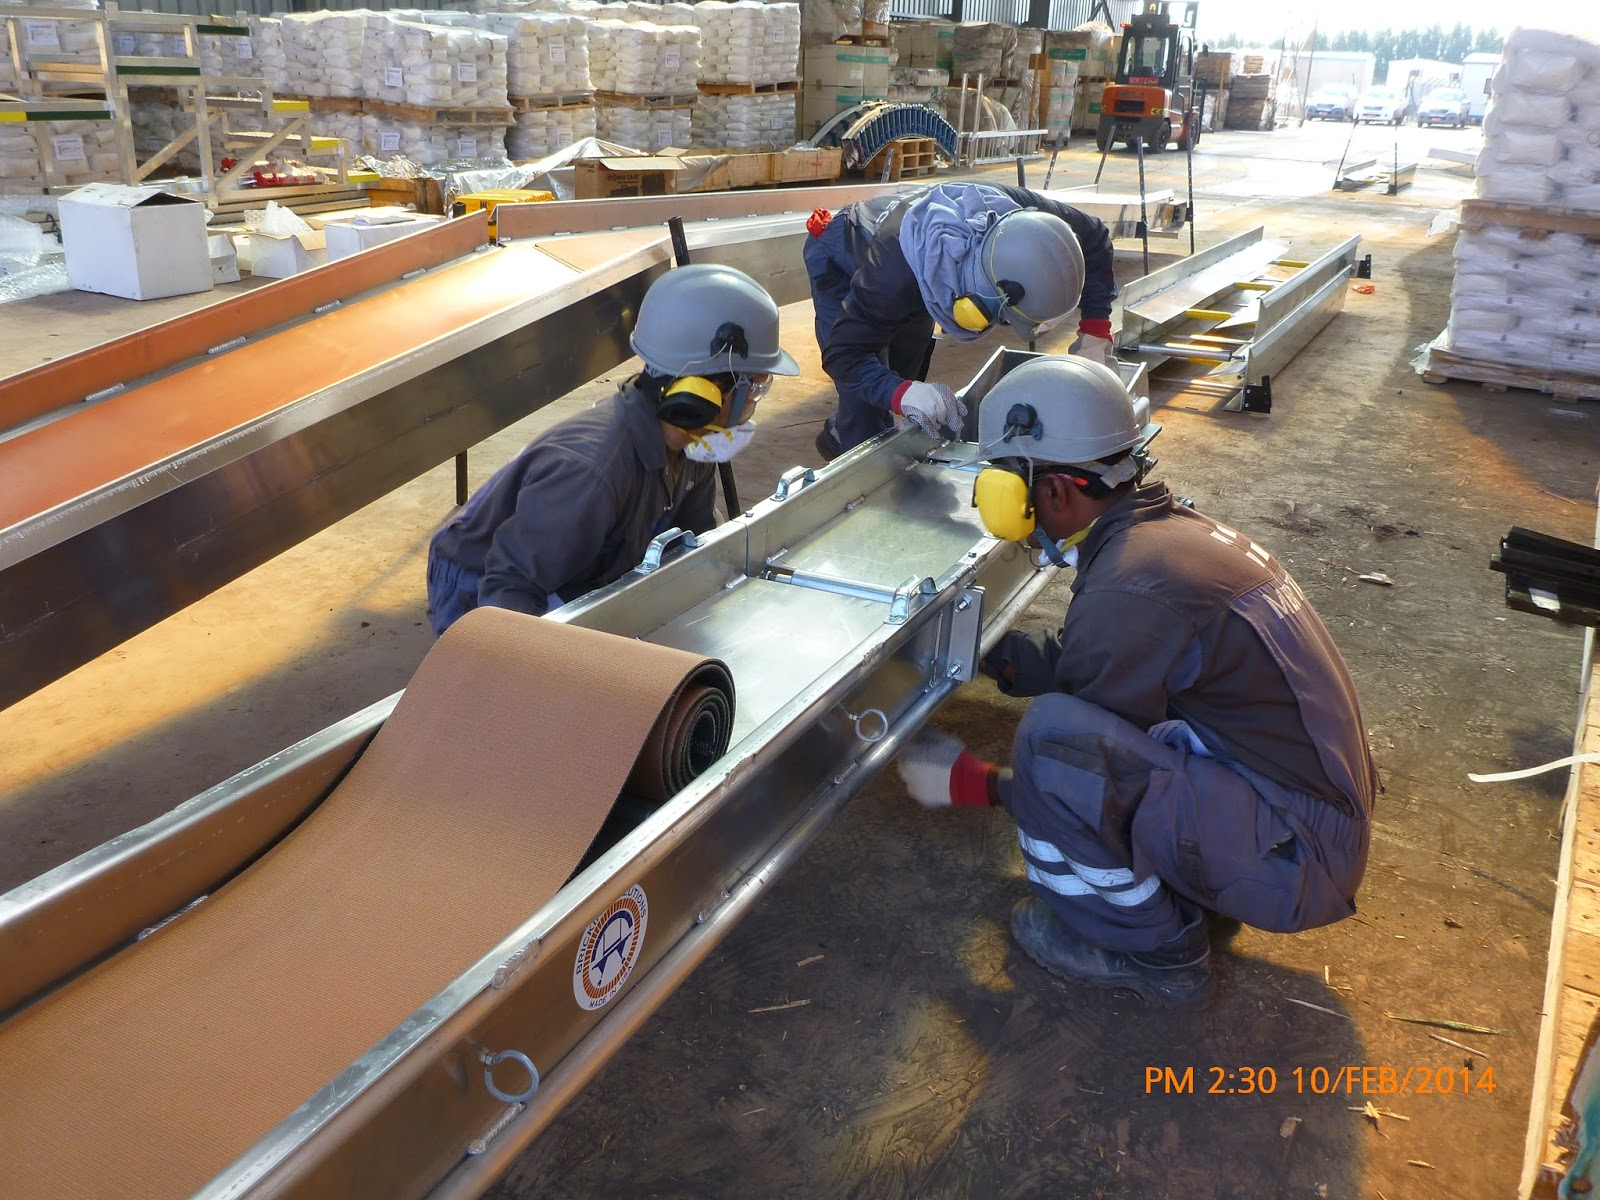 Inserting of the conveyor belt below the incline conveyor.